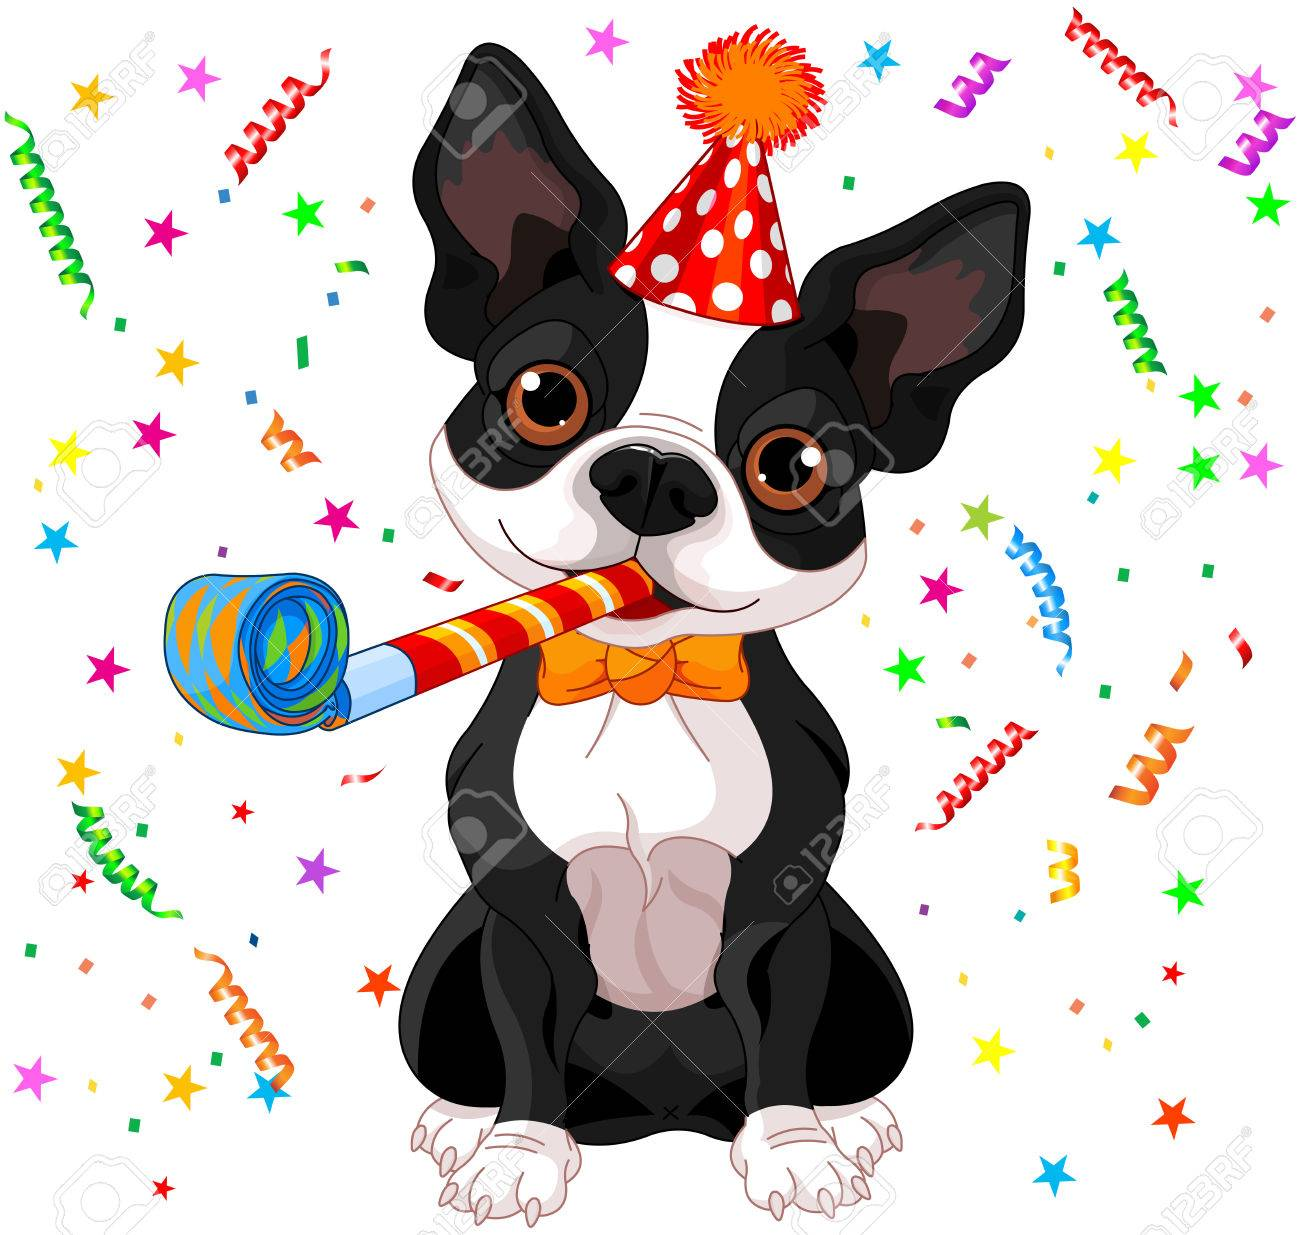 Adoptons! - Page 5 35588778-illustration-of-cute-boston-terrier-celebrating